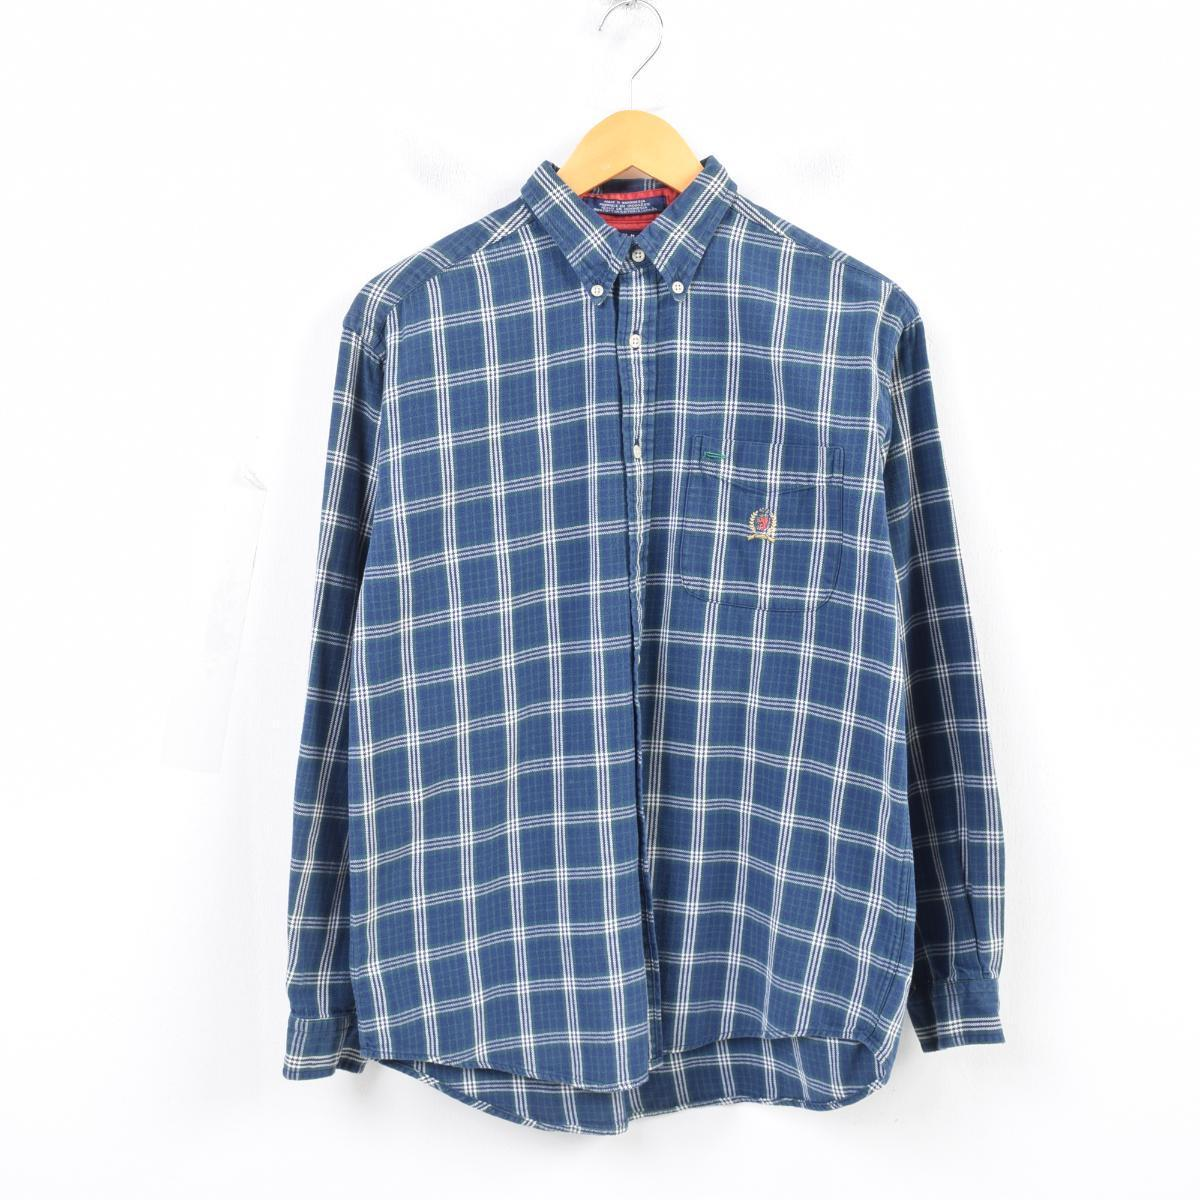 90s トミーヒルフィガー TOMMY HILFIGER long sleeves check shirt men S was4217 who are button downed